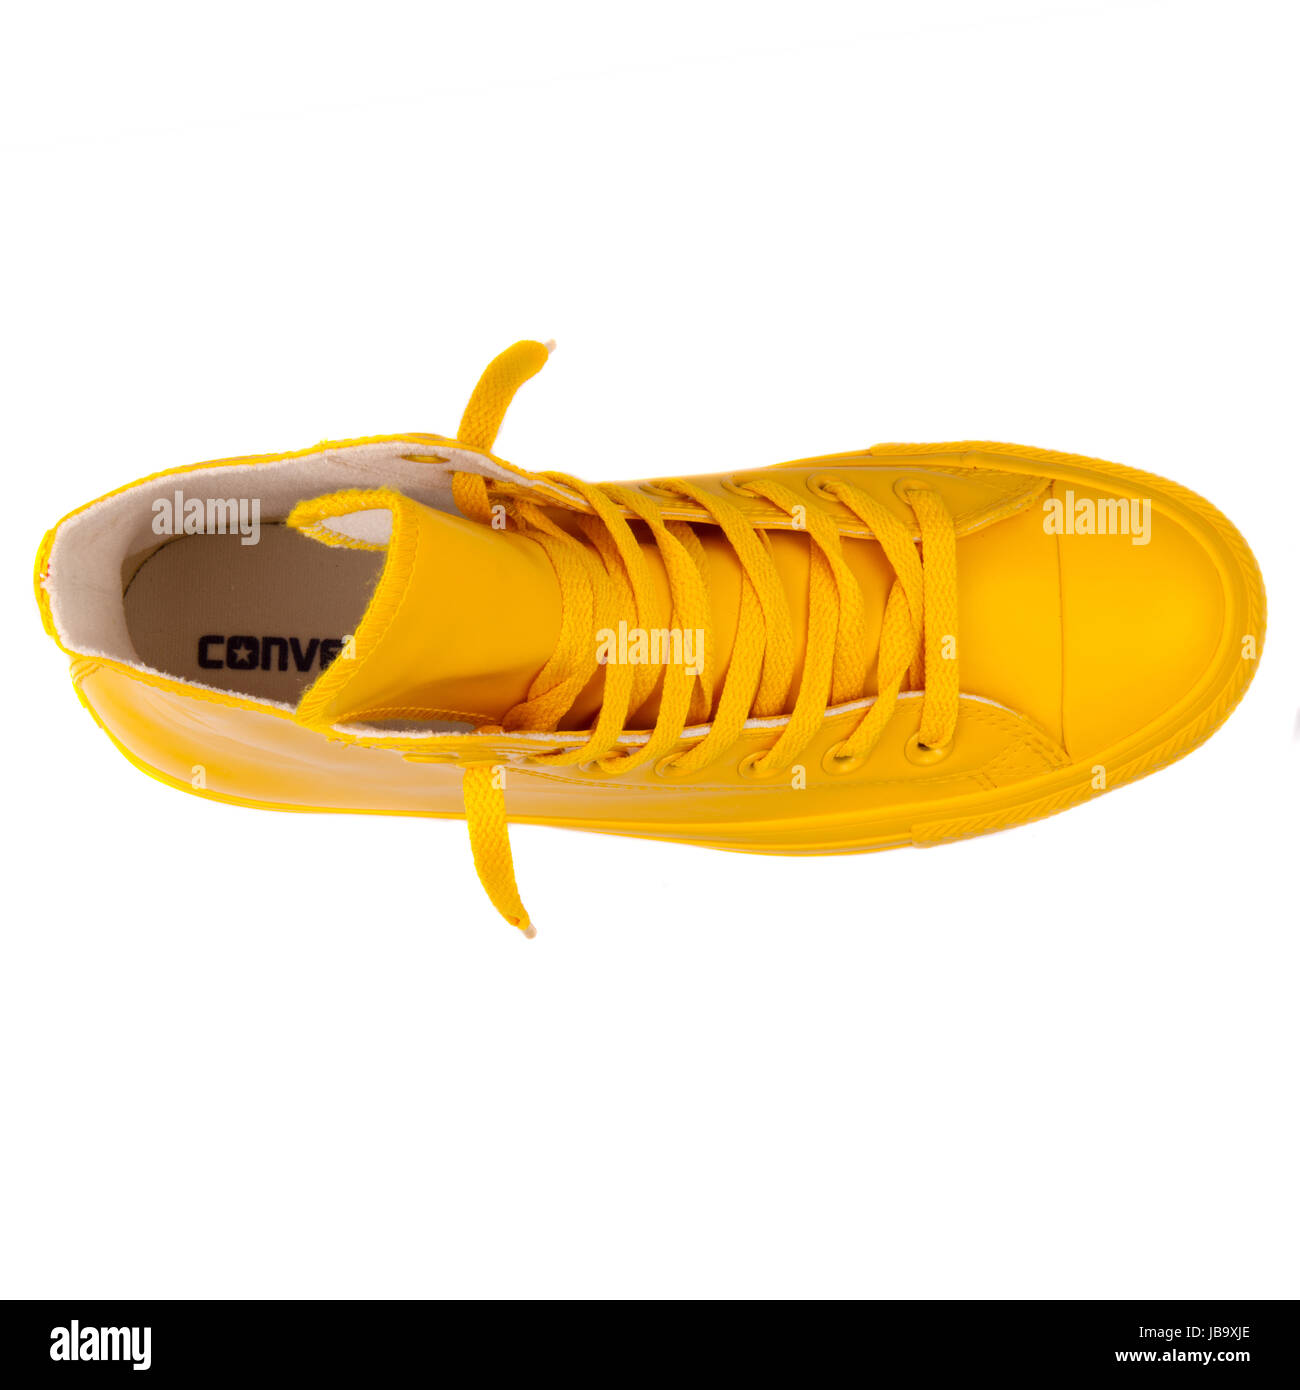 89e58086689cce Converse Chuck Taylor All Star Hi Wild Honey Yellow Unisex Shoes - 144747C  - Stock Image